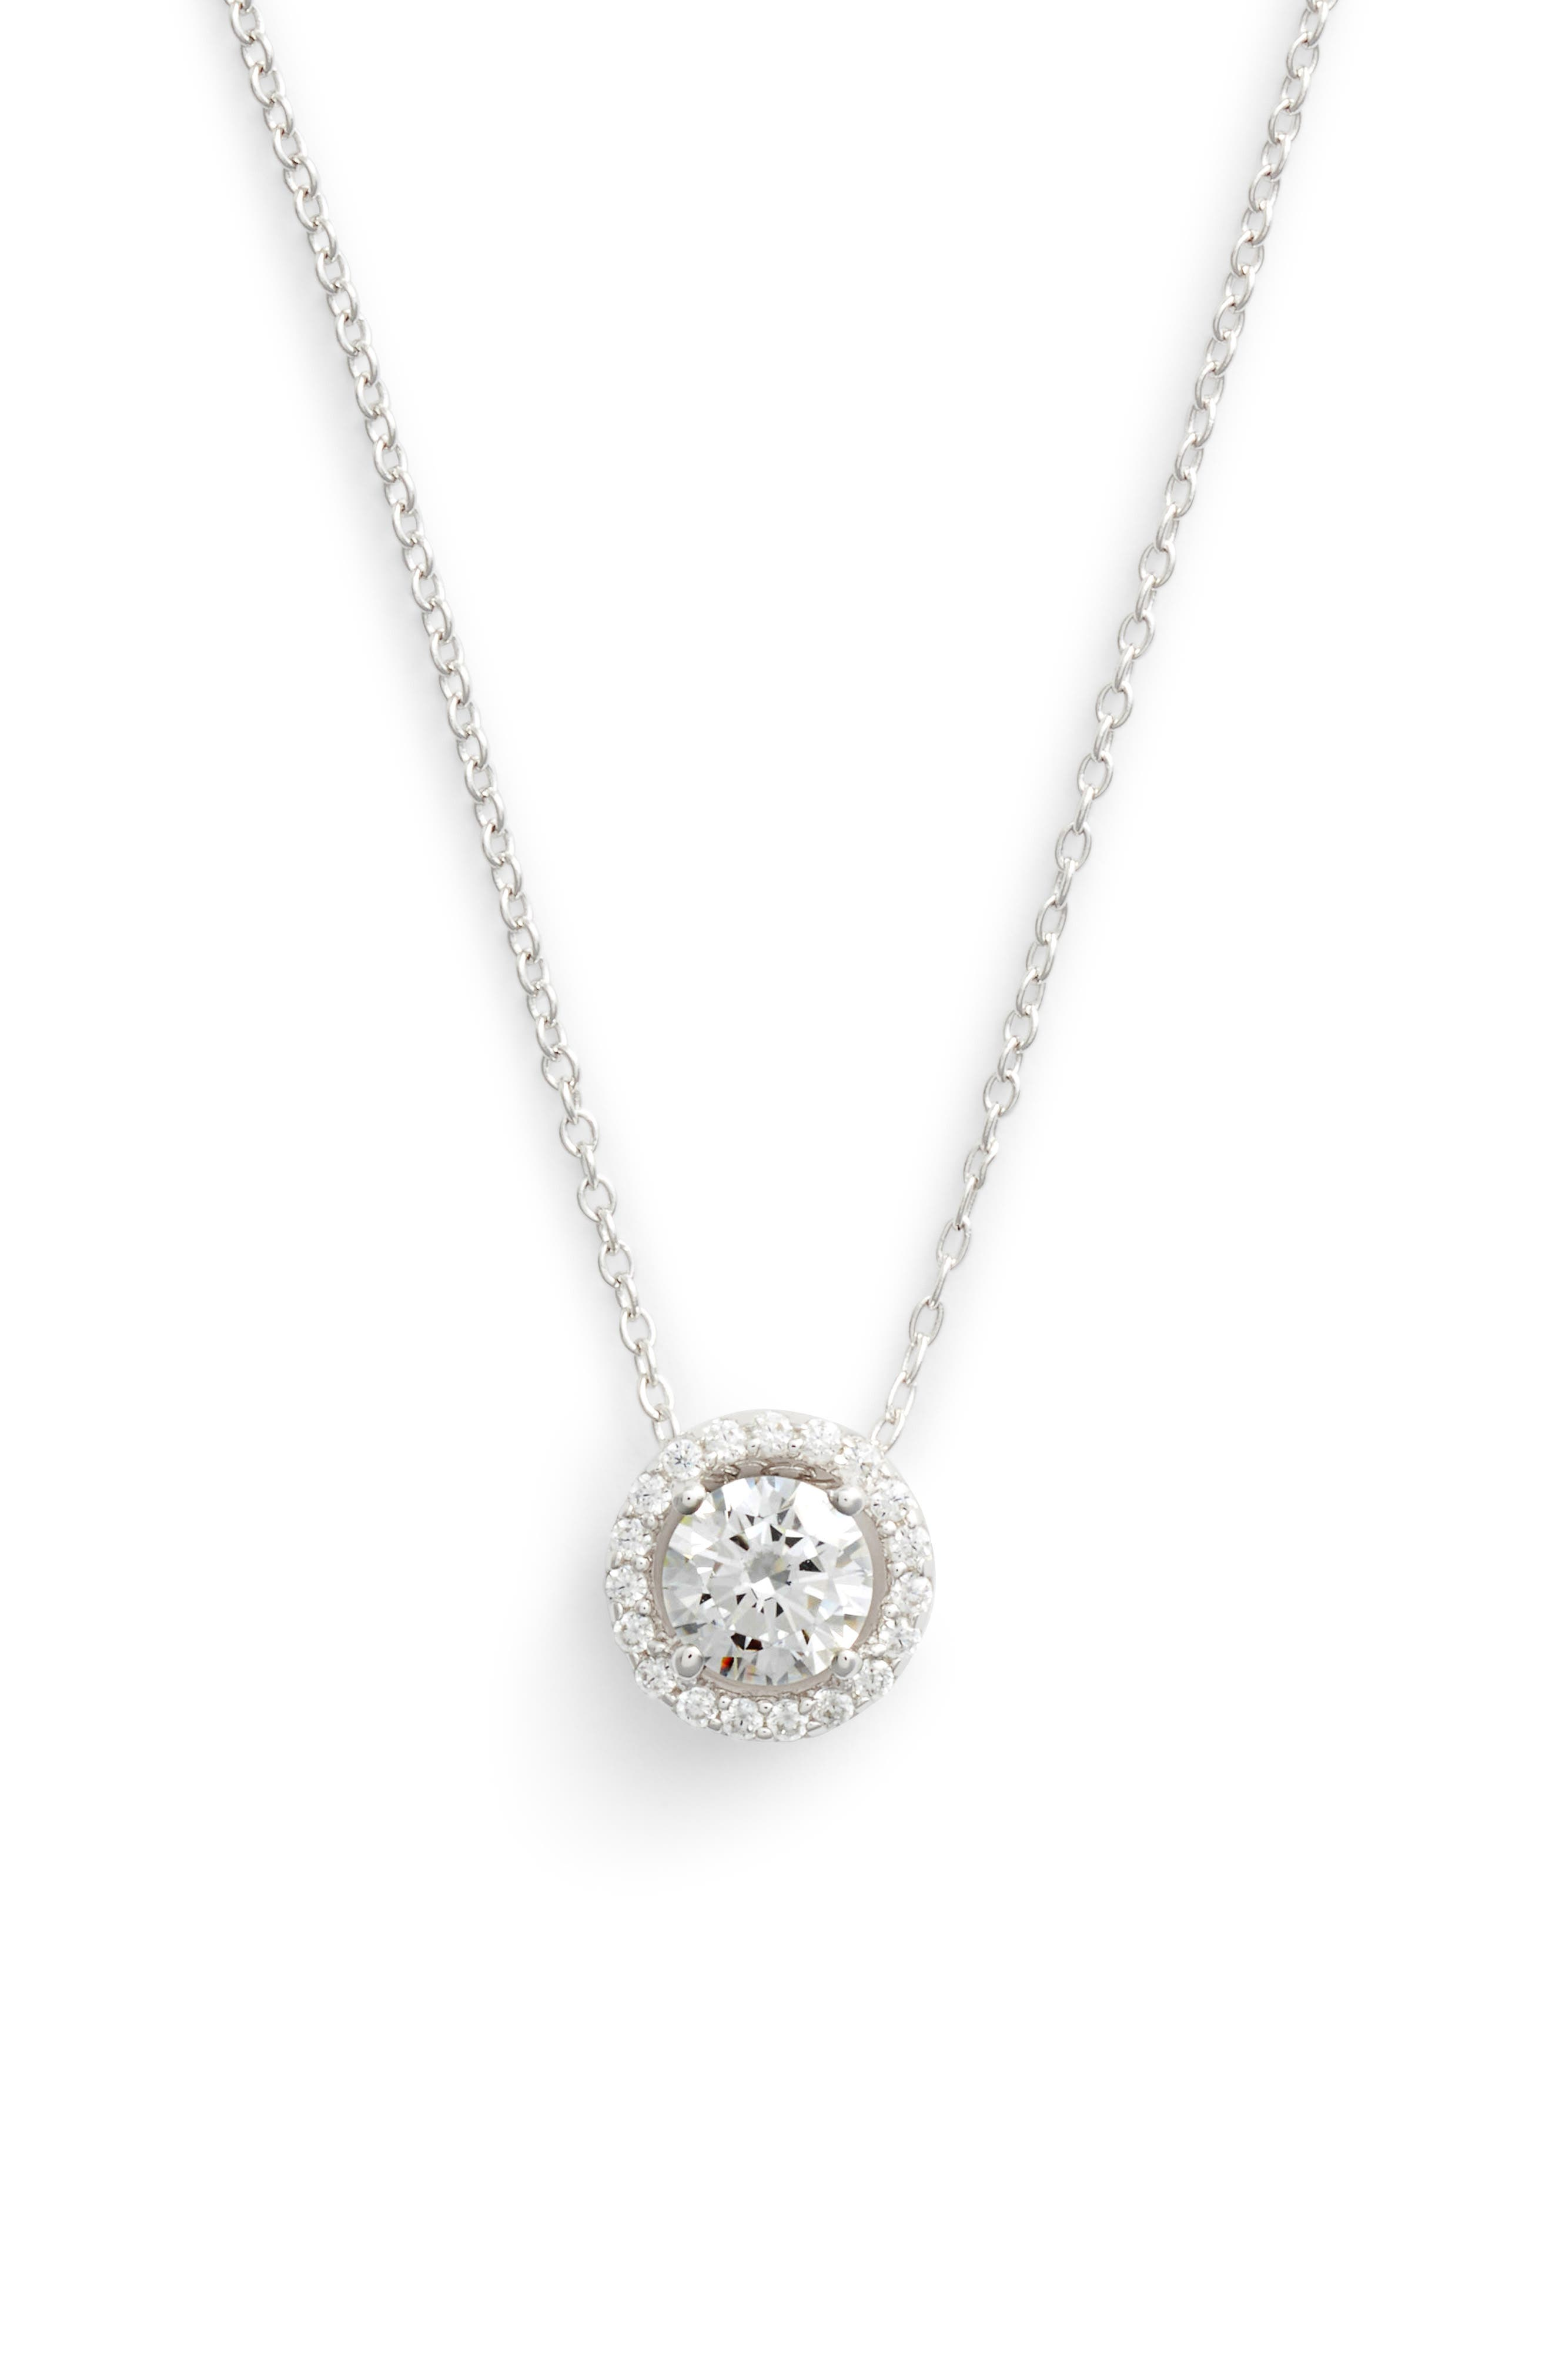 Round Halo Necklace,                             Main thumbnail 1, color,                             SILVER/ CLEAR